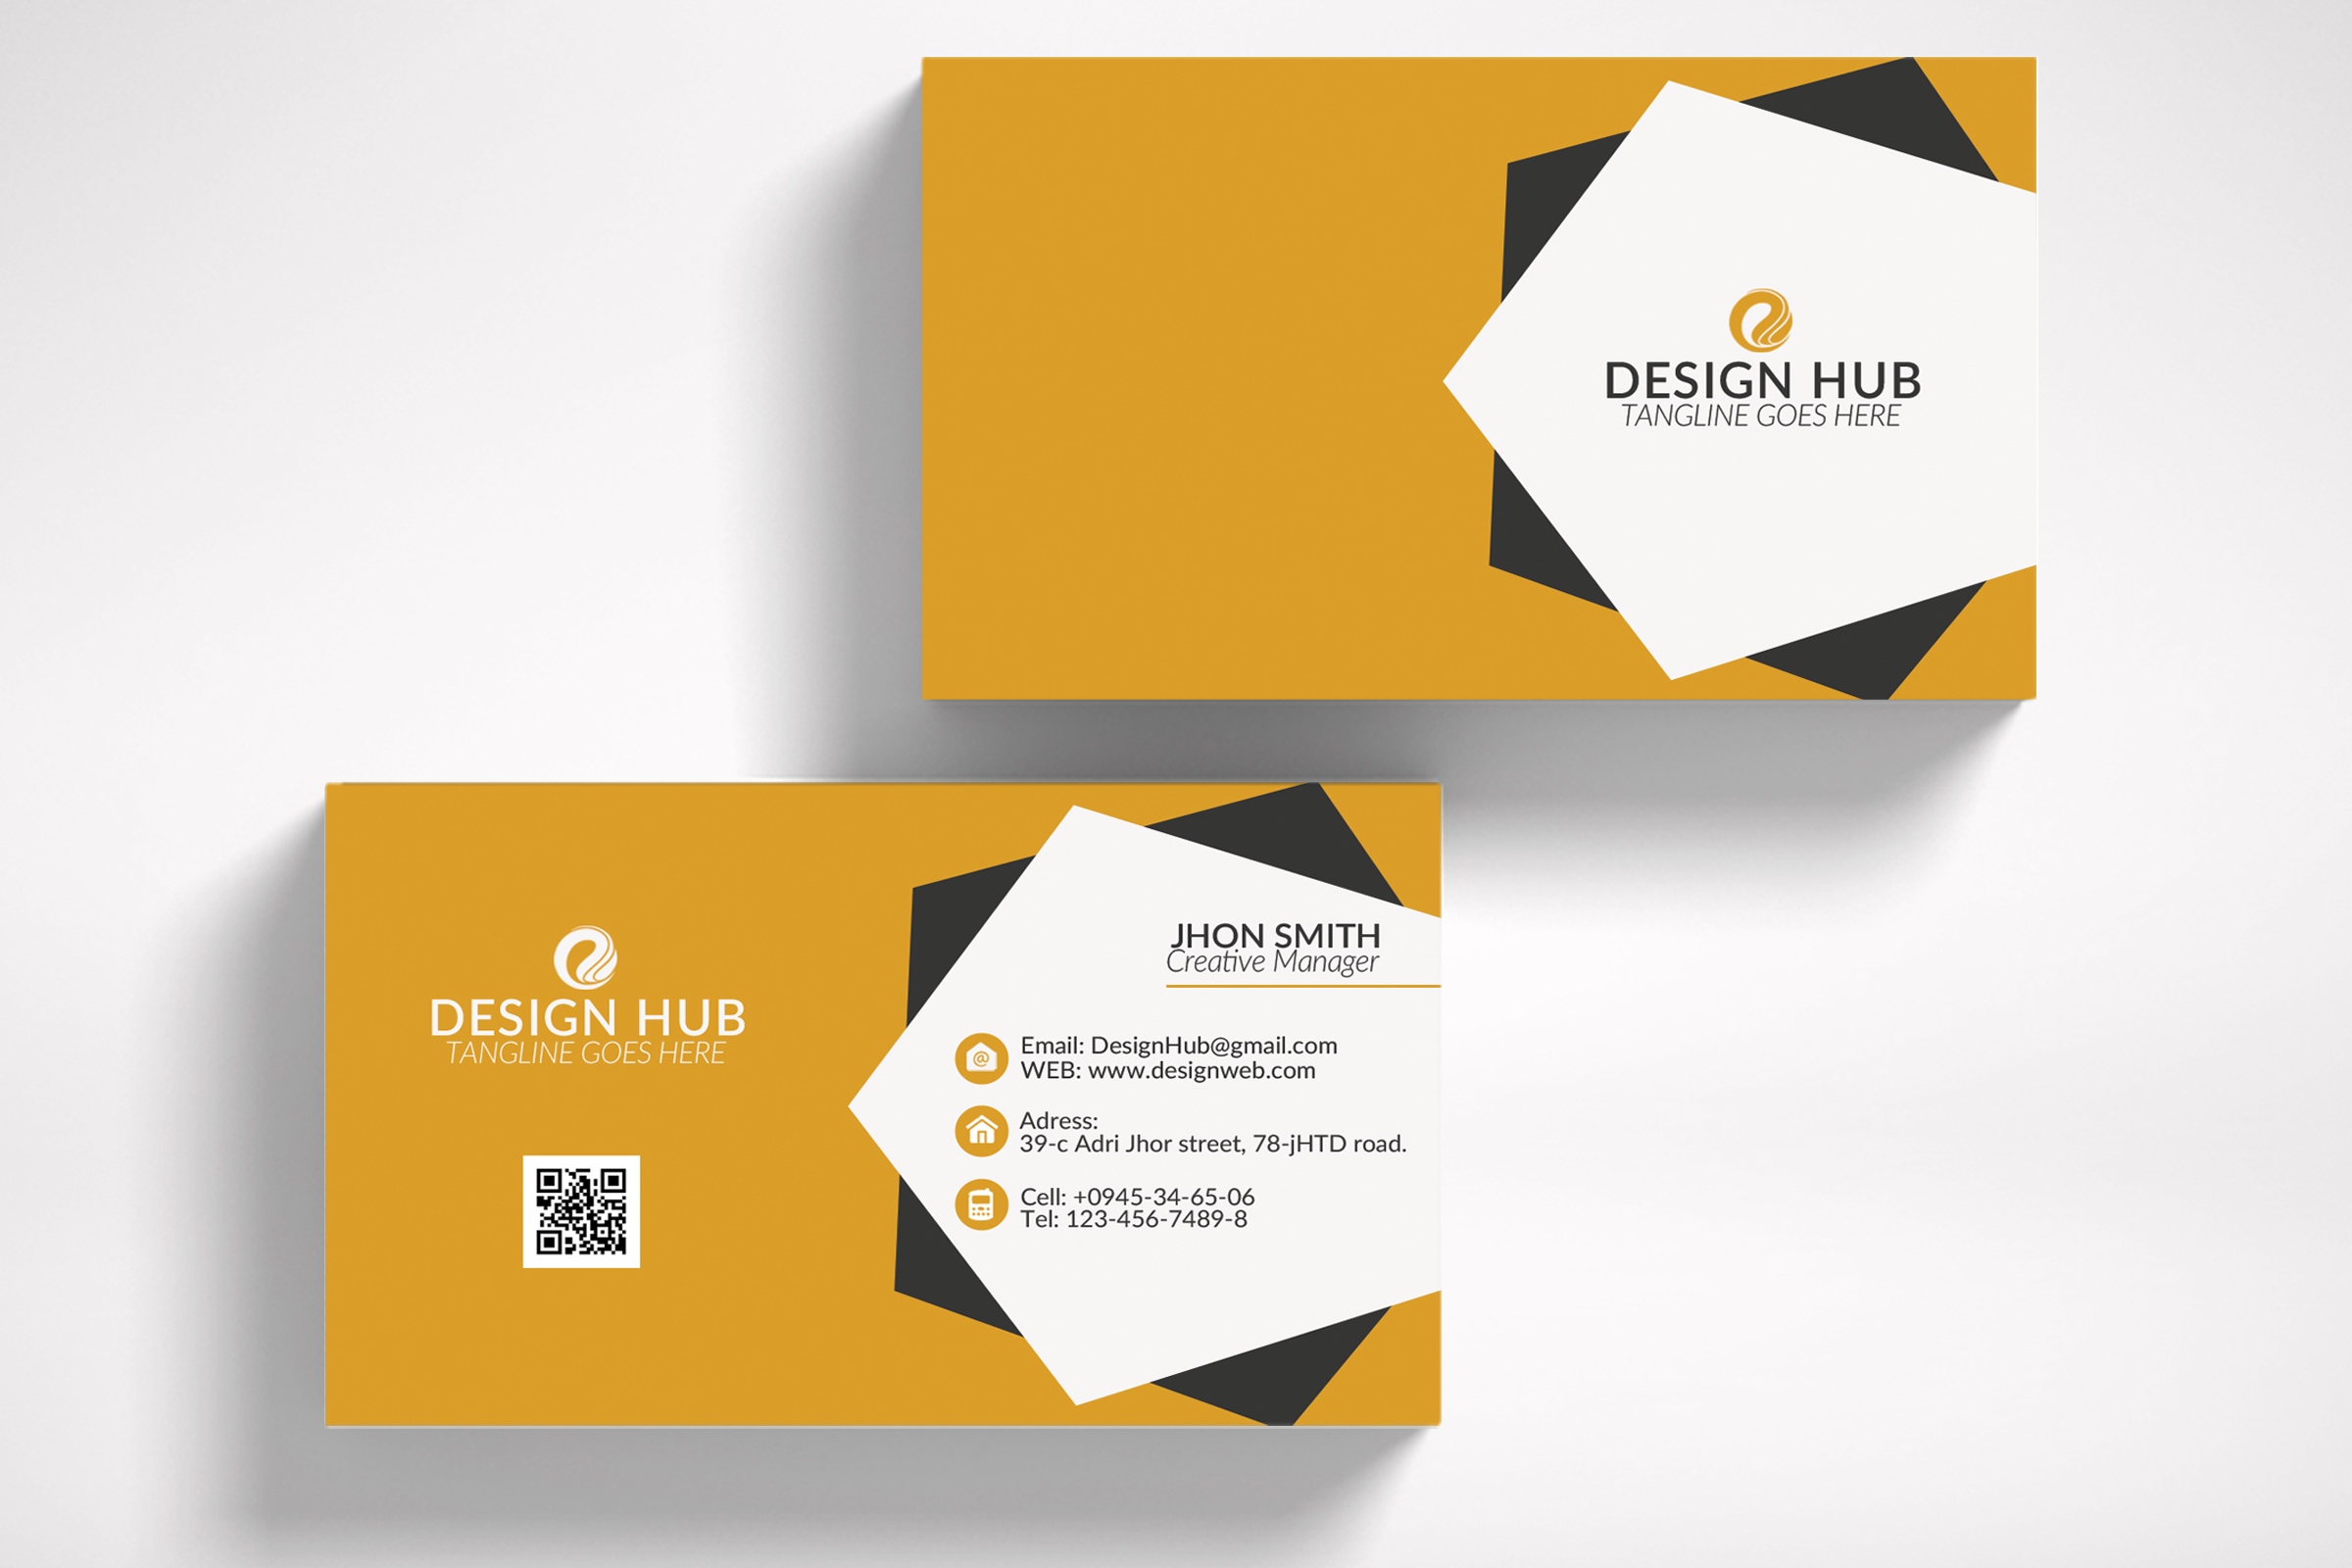 Stylish Business Card Template example image 3